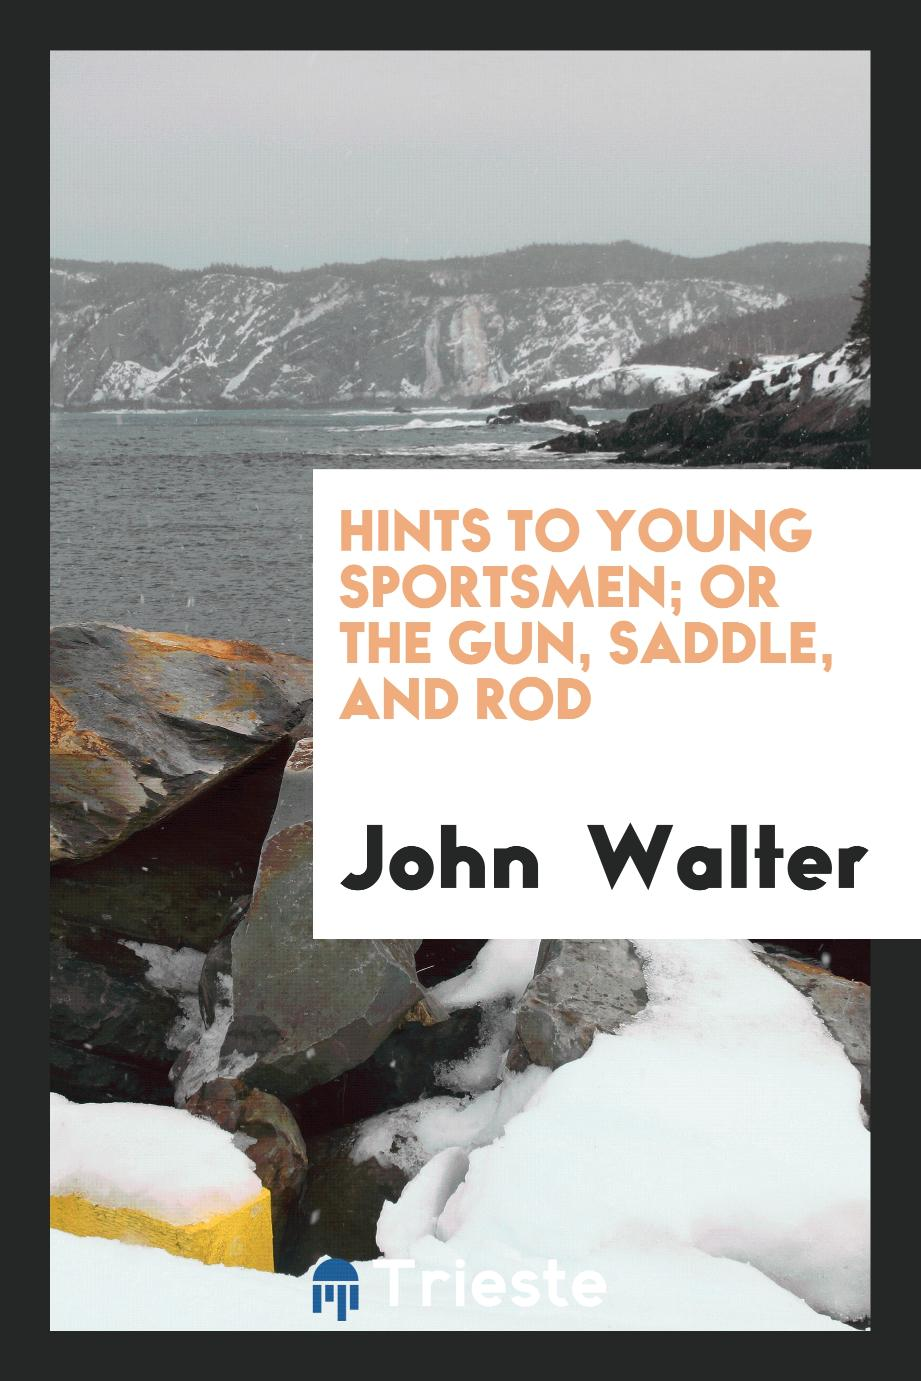 HINTS TO YOUNG SPORTSMEN; or the gun, saddle, and rod